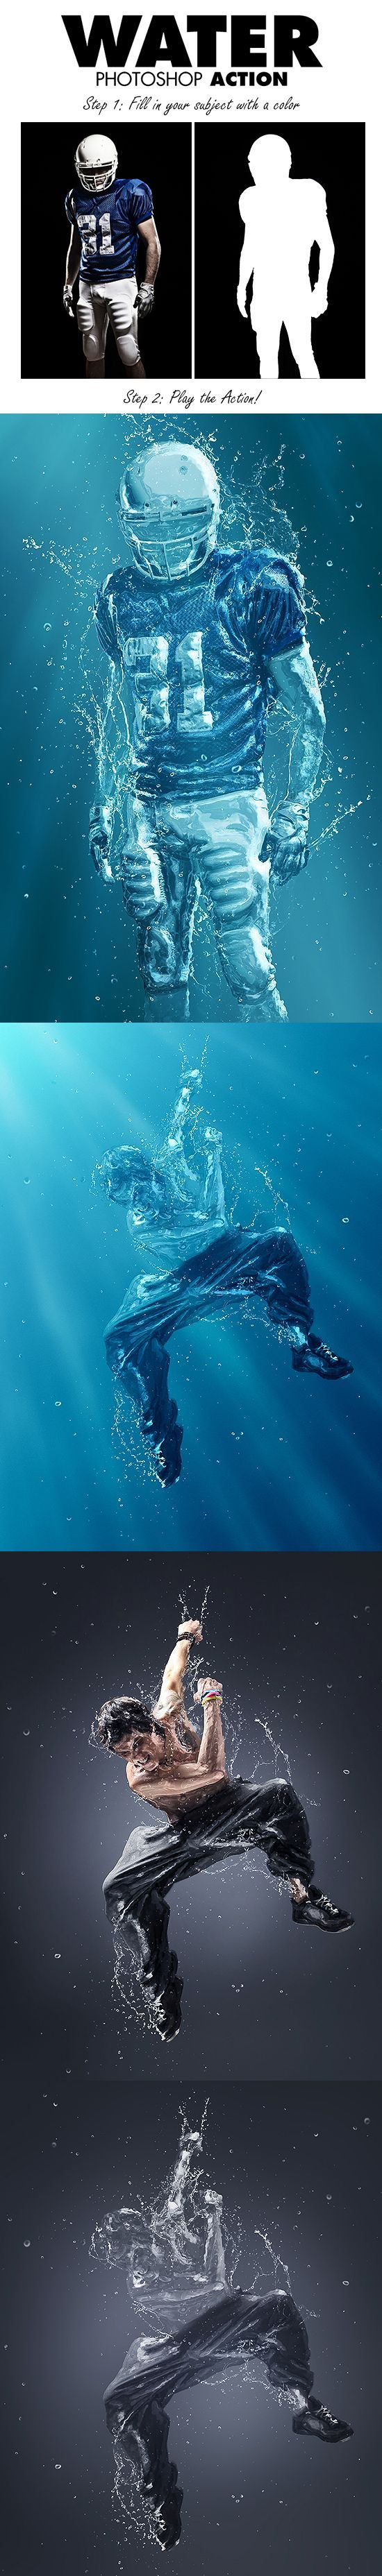 These are really cool pictures, making the subjects seem like they are under water. These are very clearly photoshopped but still are very nice looking.